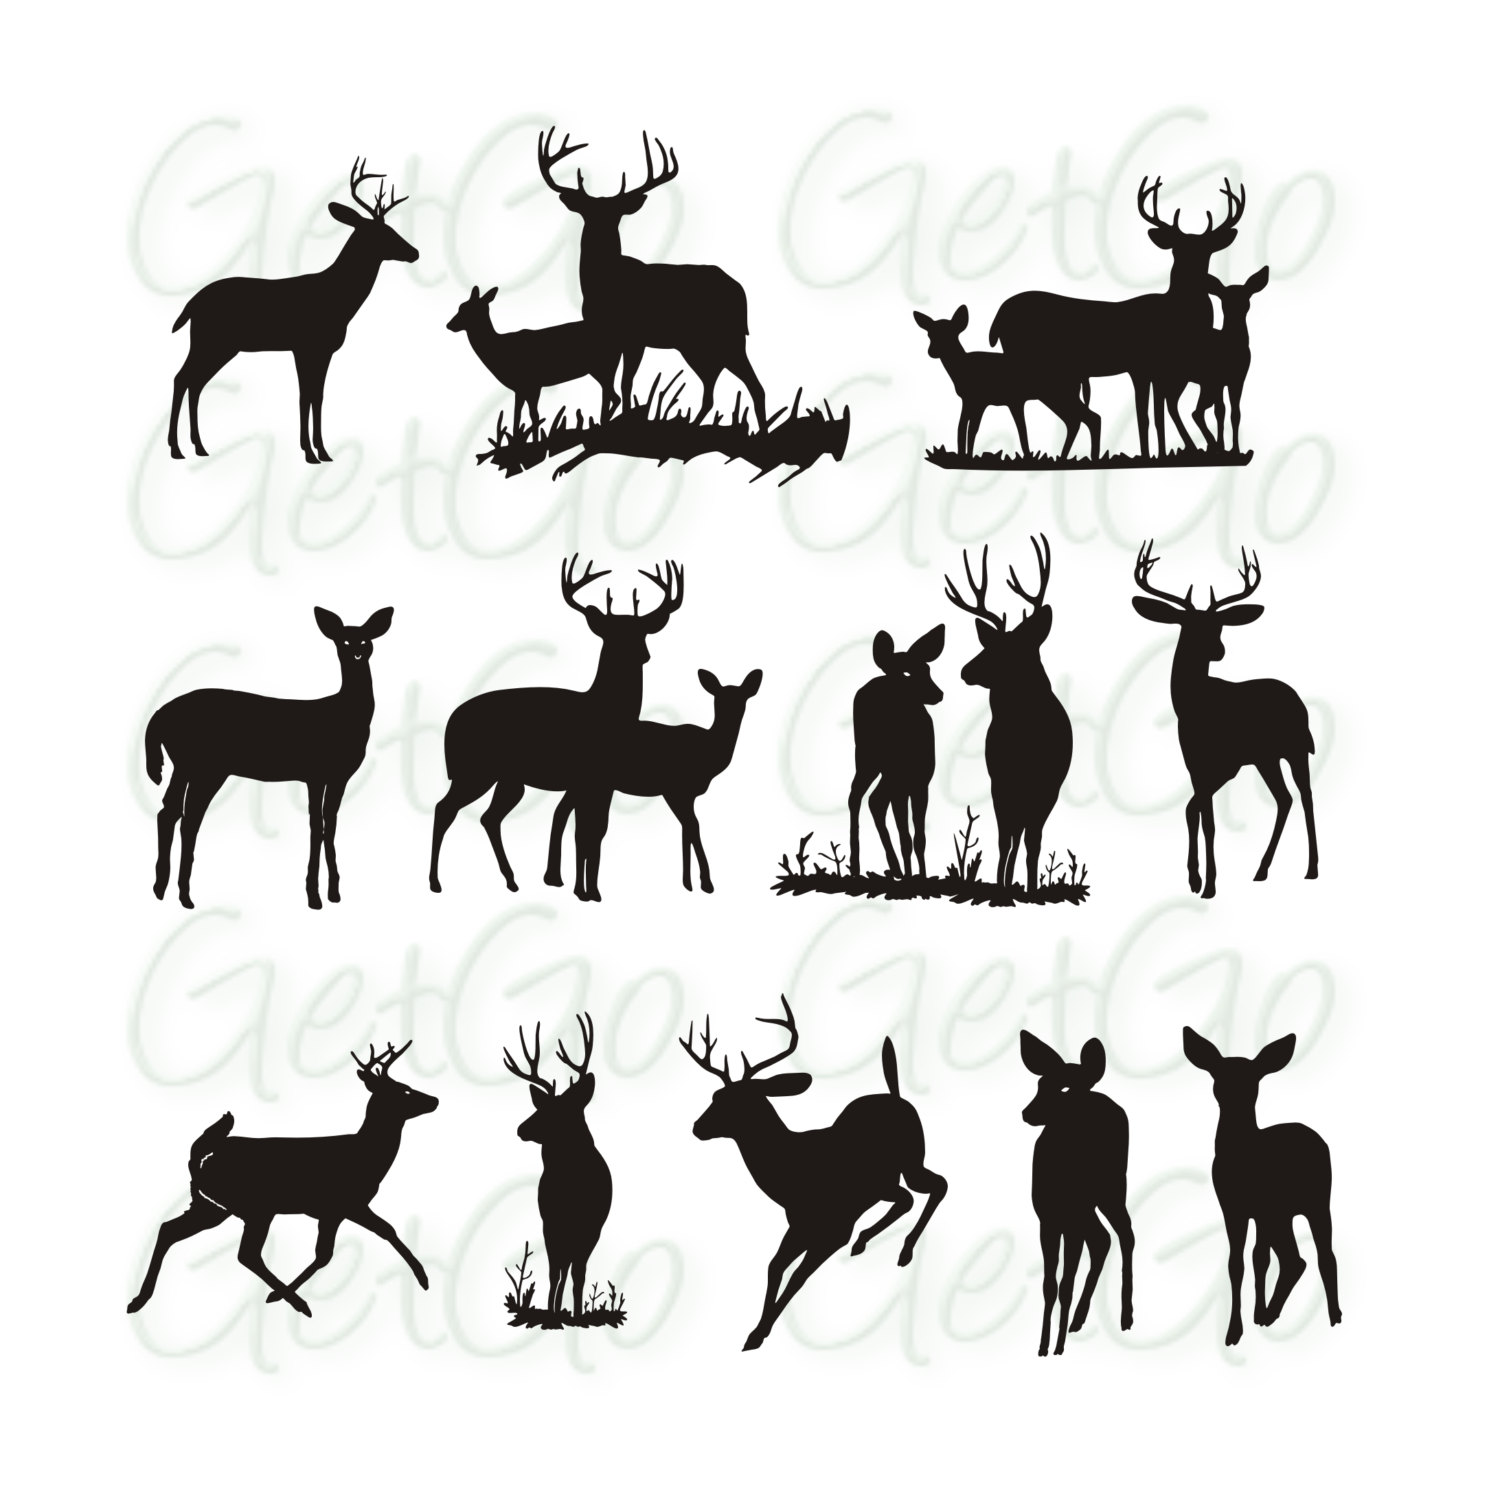 1500x1489 Deer Silhouette Printable Graphic Artwork Clip Art Vector Animals